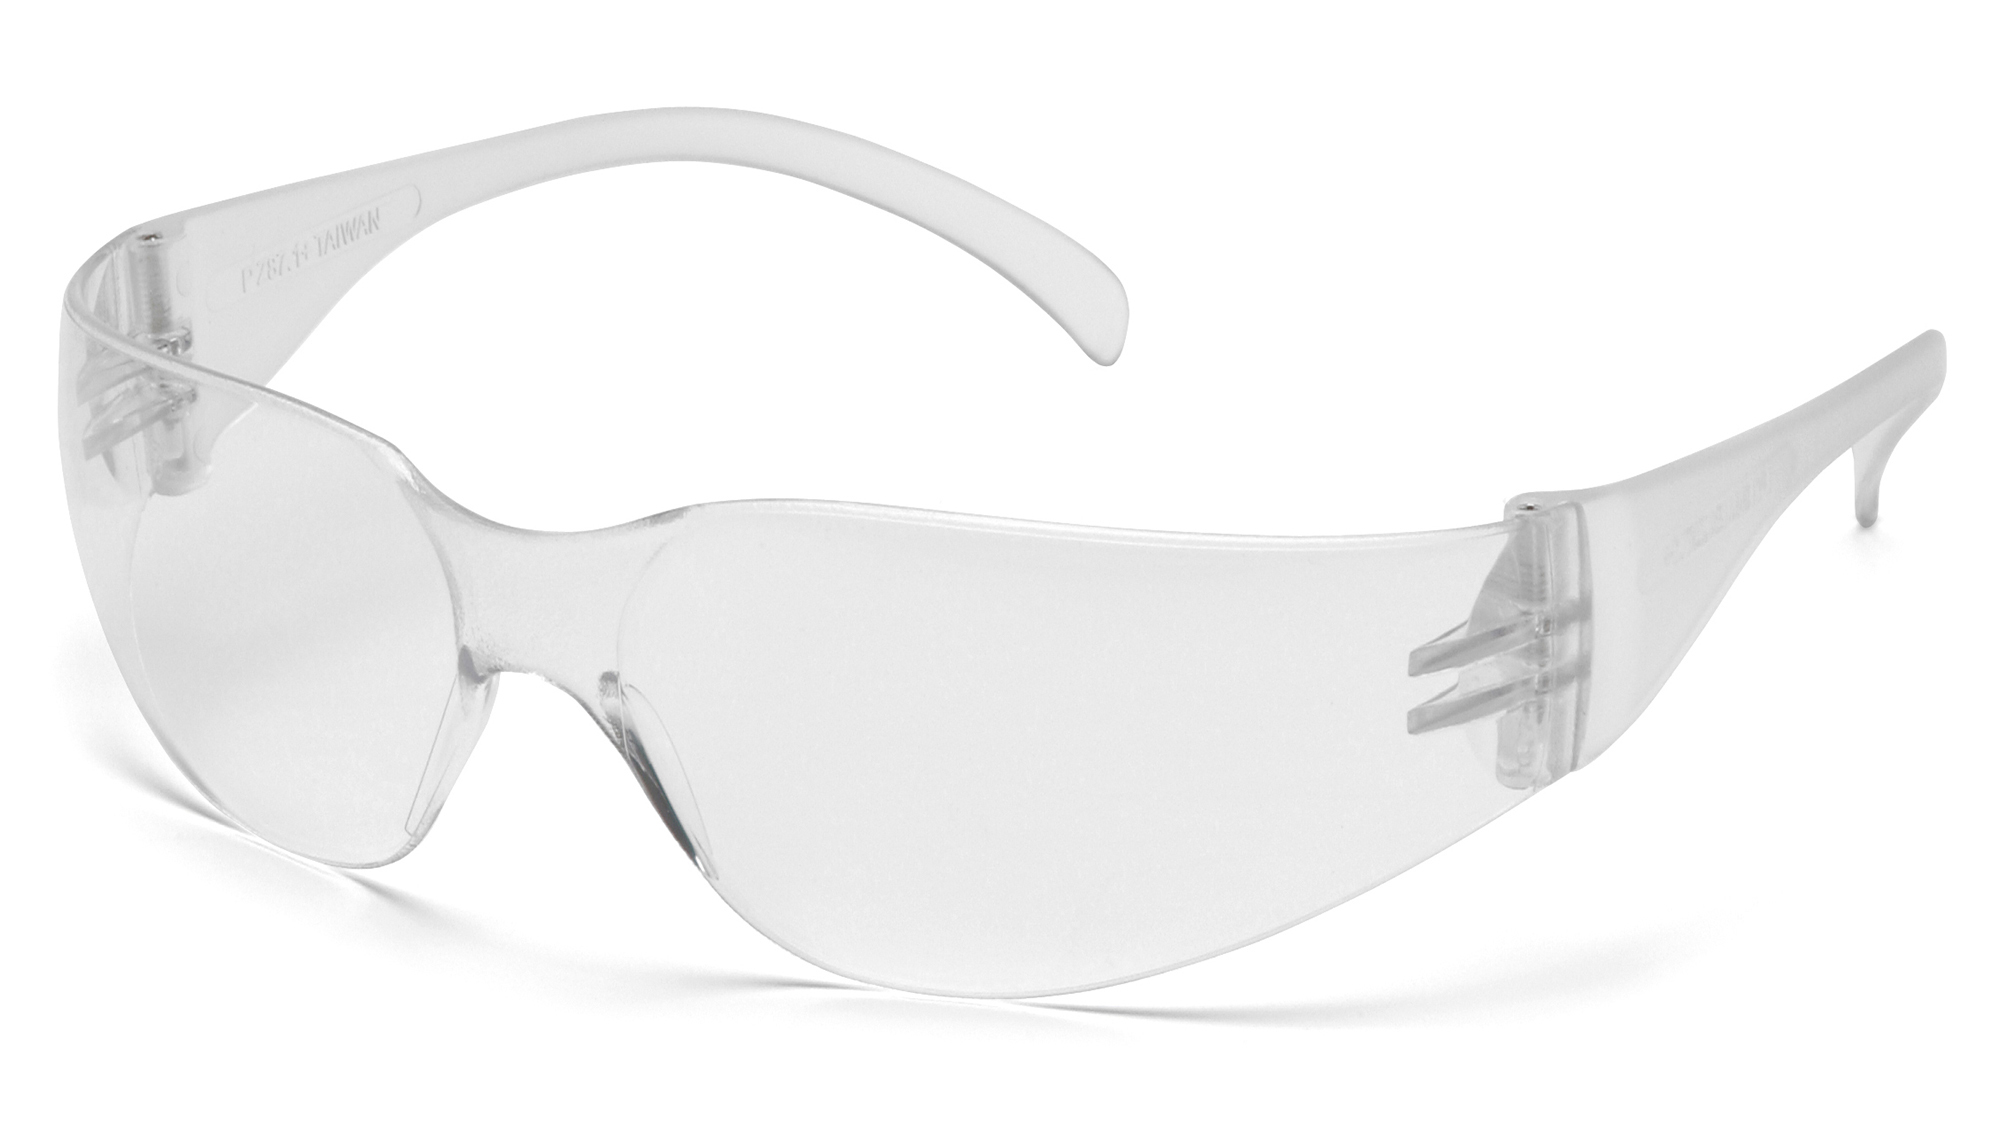 MINI Intruder Safety Glasses - Clear Anti-Fog Lens/Frame (Small Size)